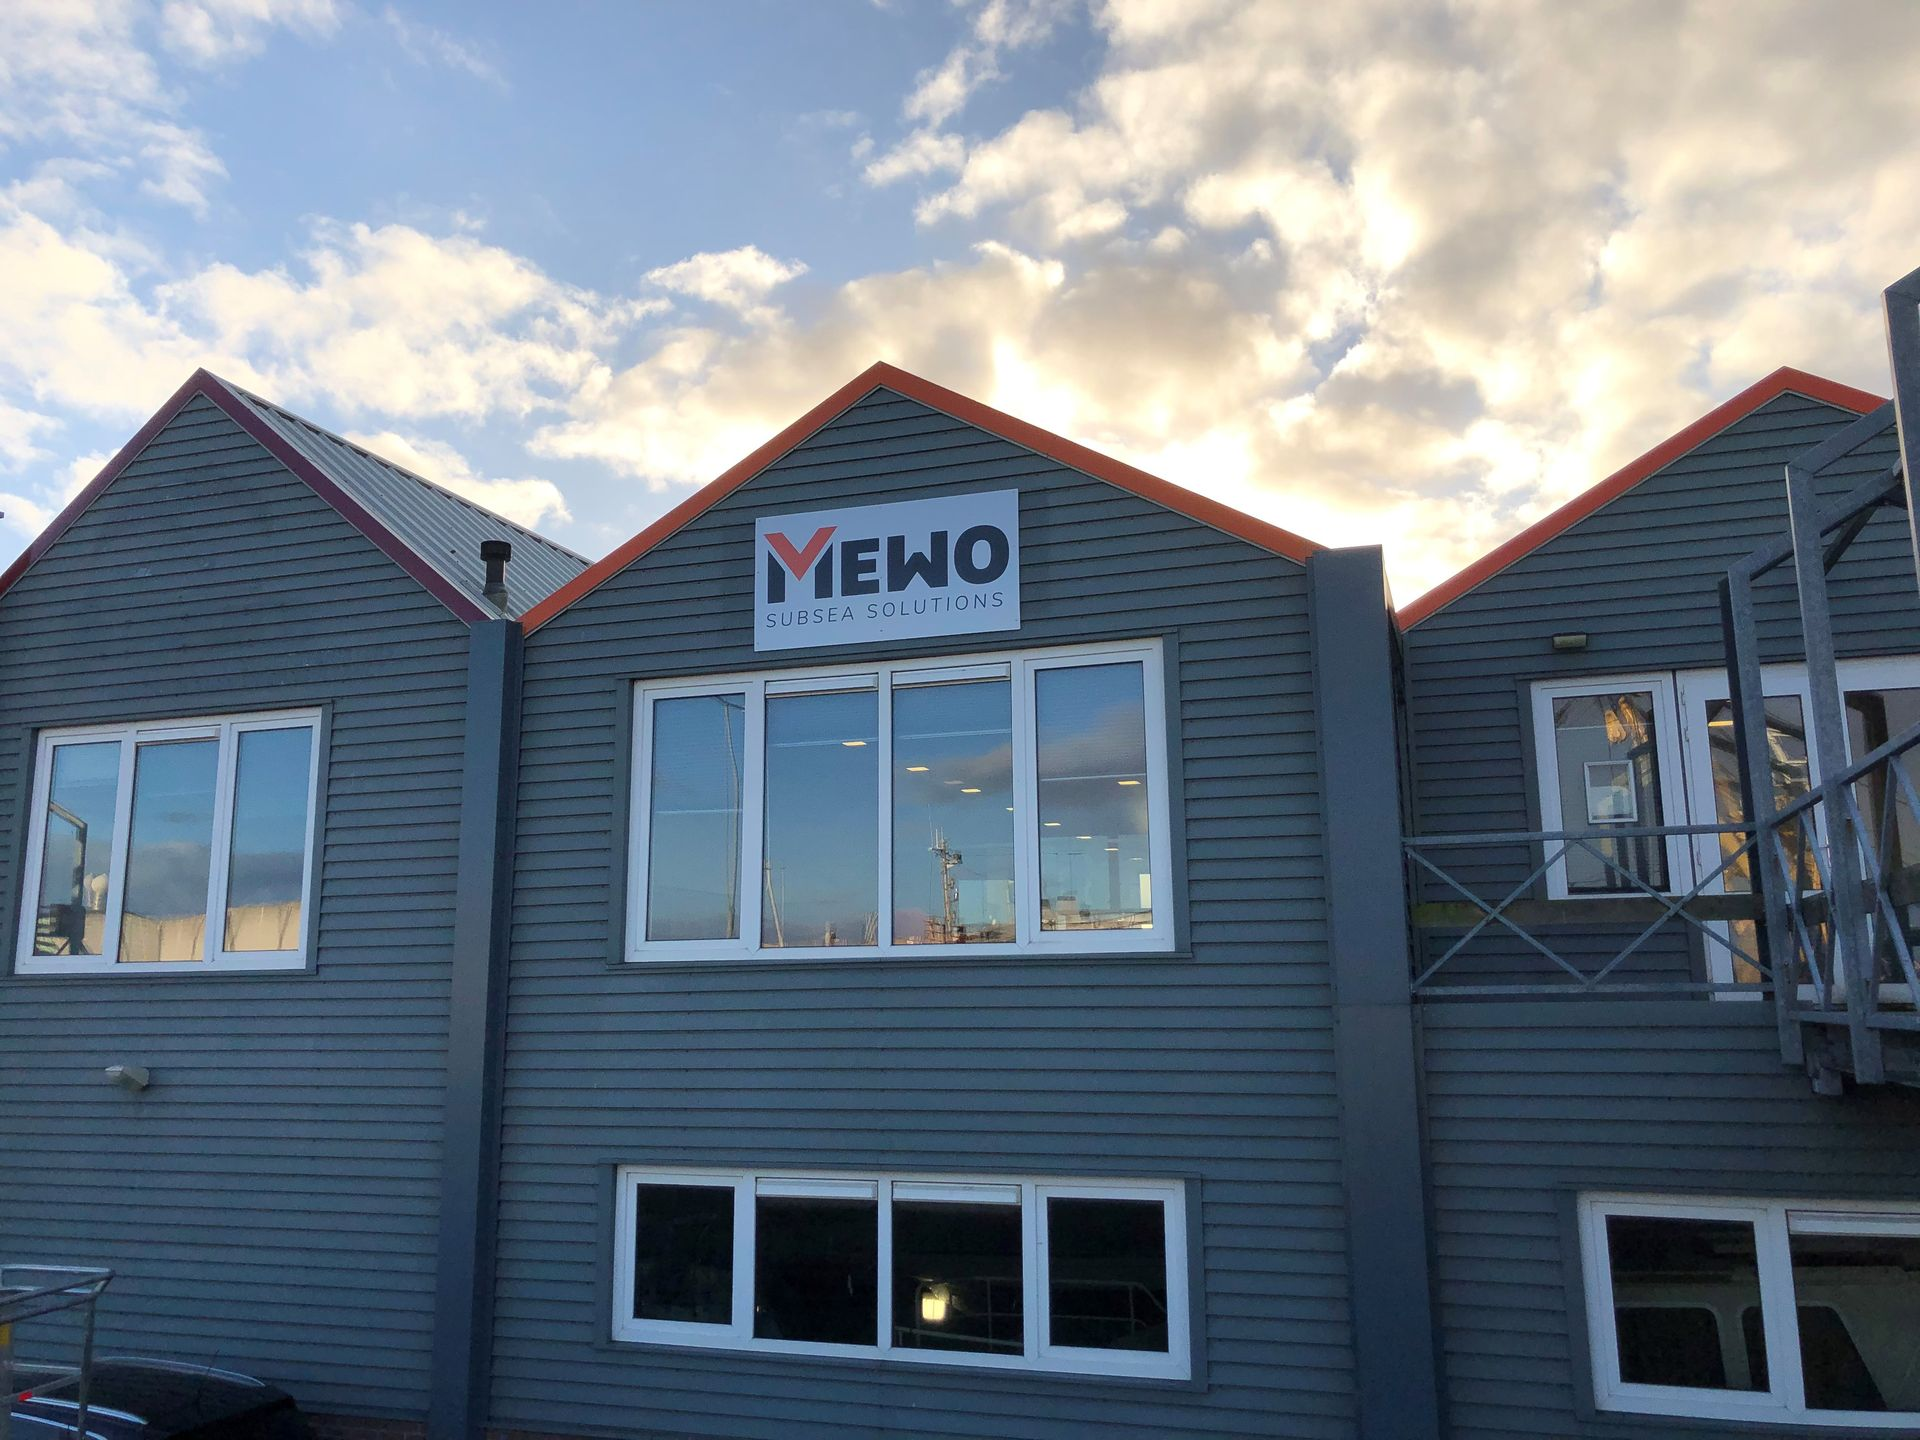 MEWO S.A. opens an office in Den Helder